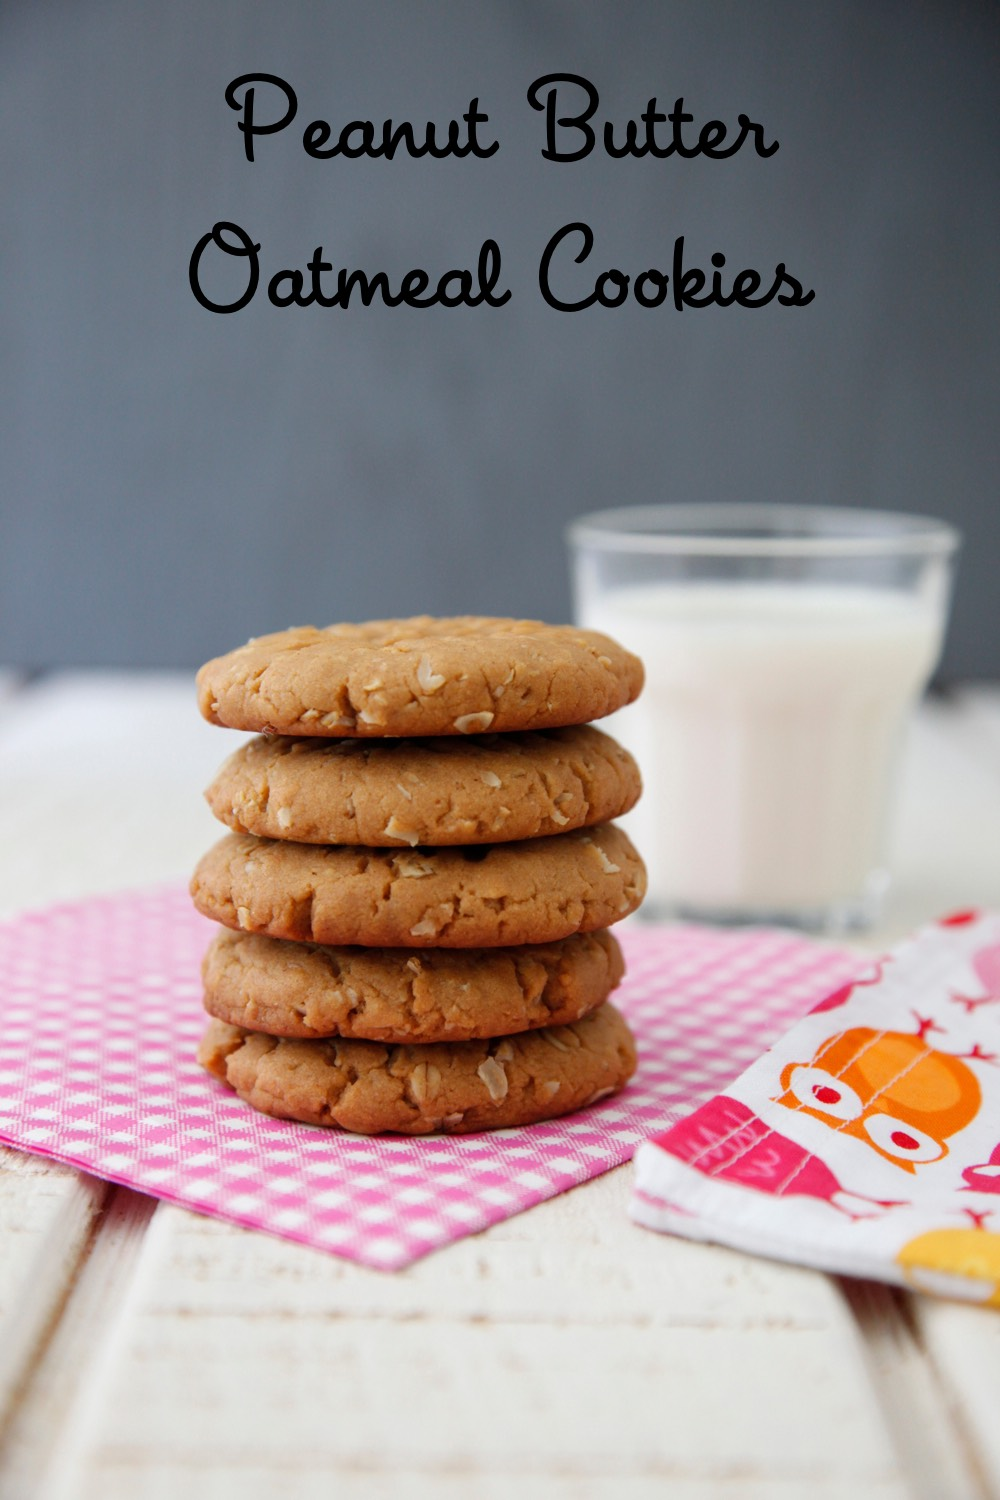 Peanut Butter Oatmeal Cookies + Giveaway